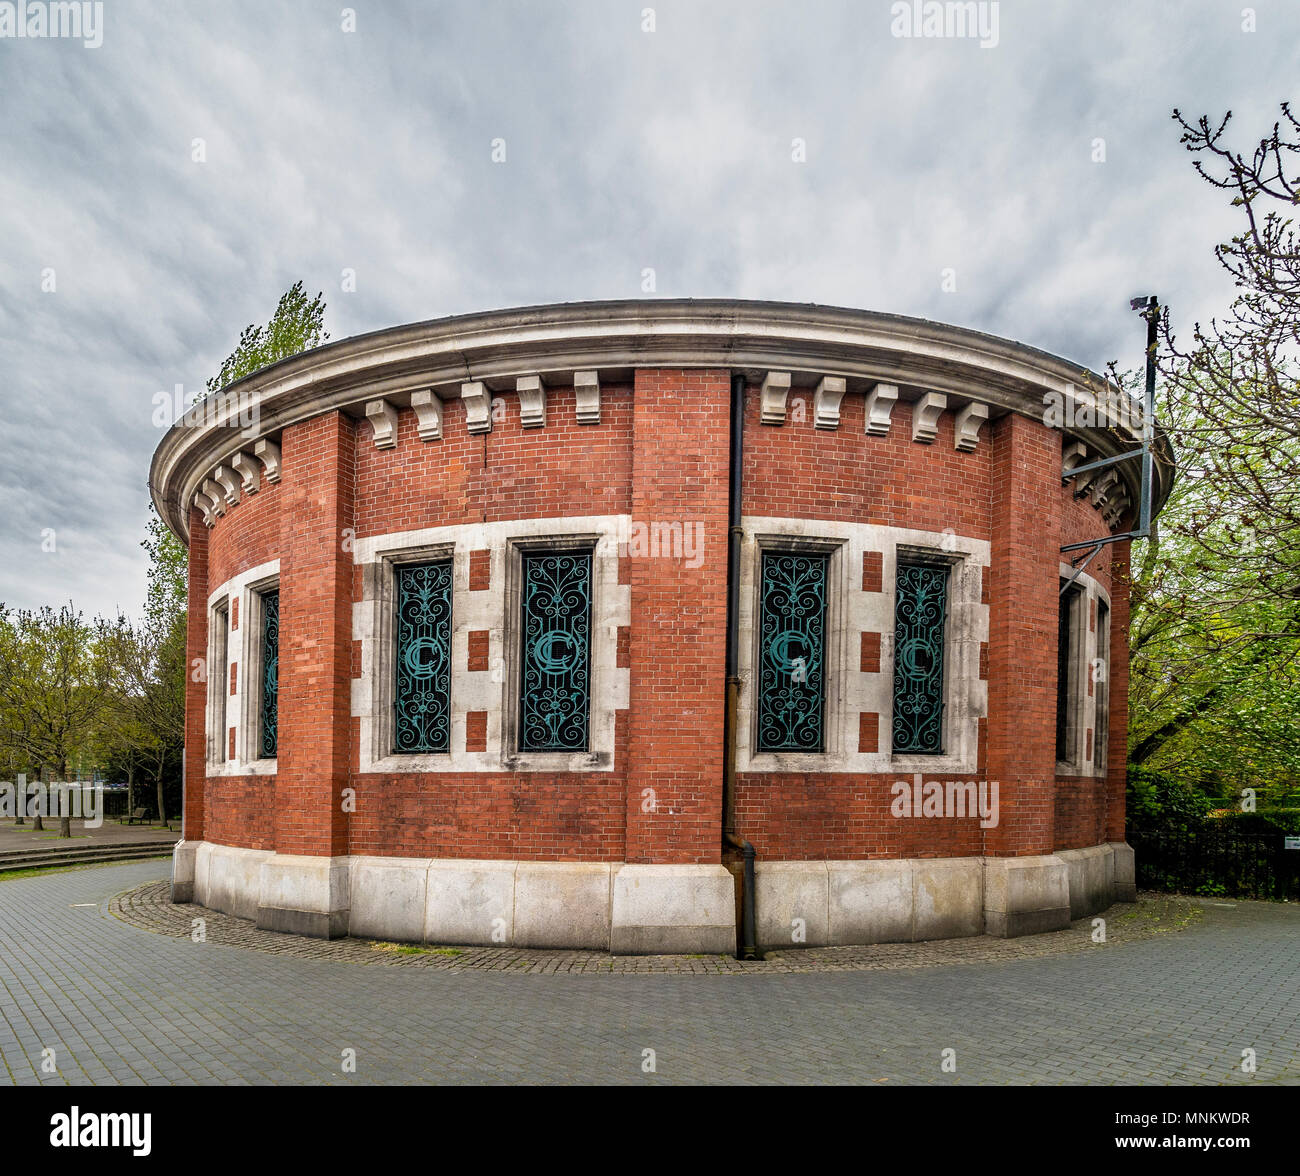 Air shaft to Rotherhithe Tunnel in King Edward VII Memorial Park on the North bank of the River Thames, London, UK. - Stock Image